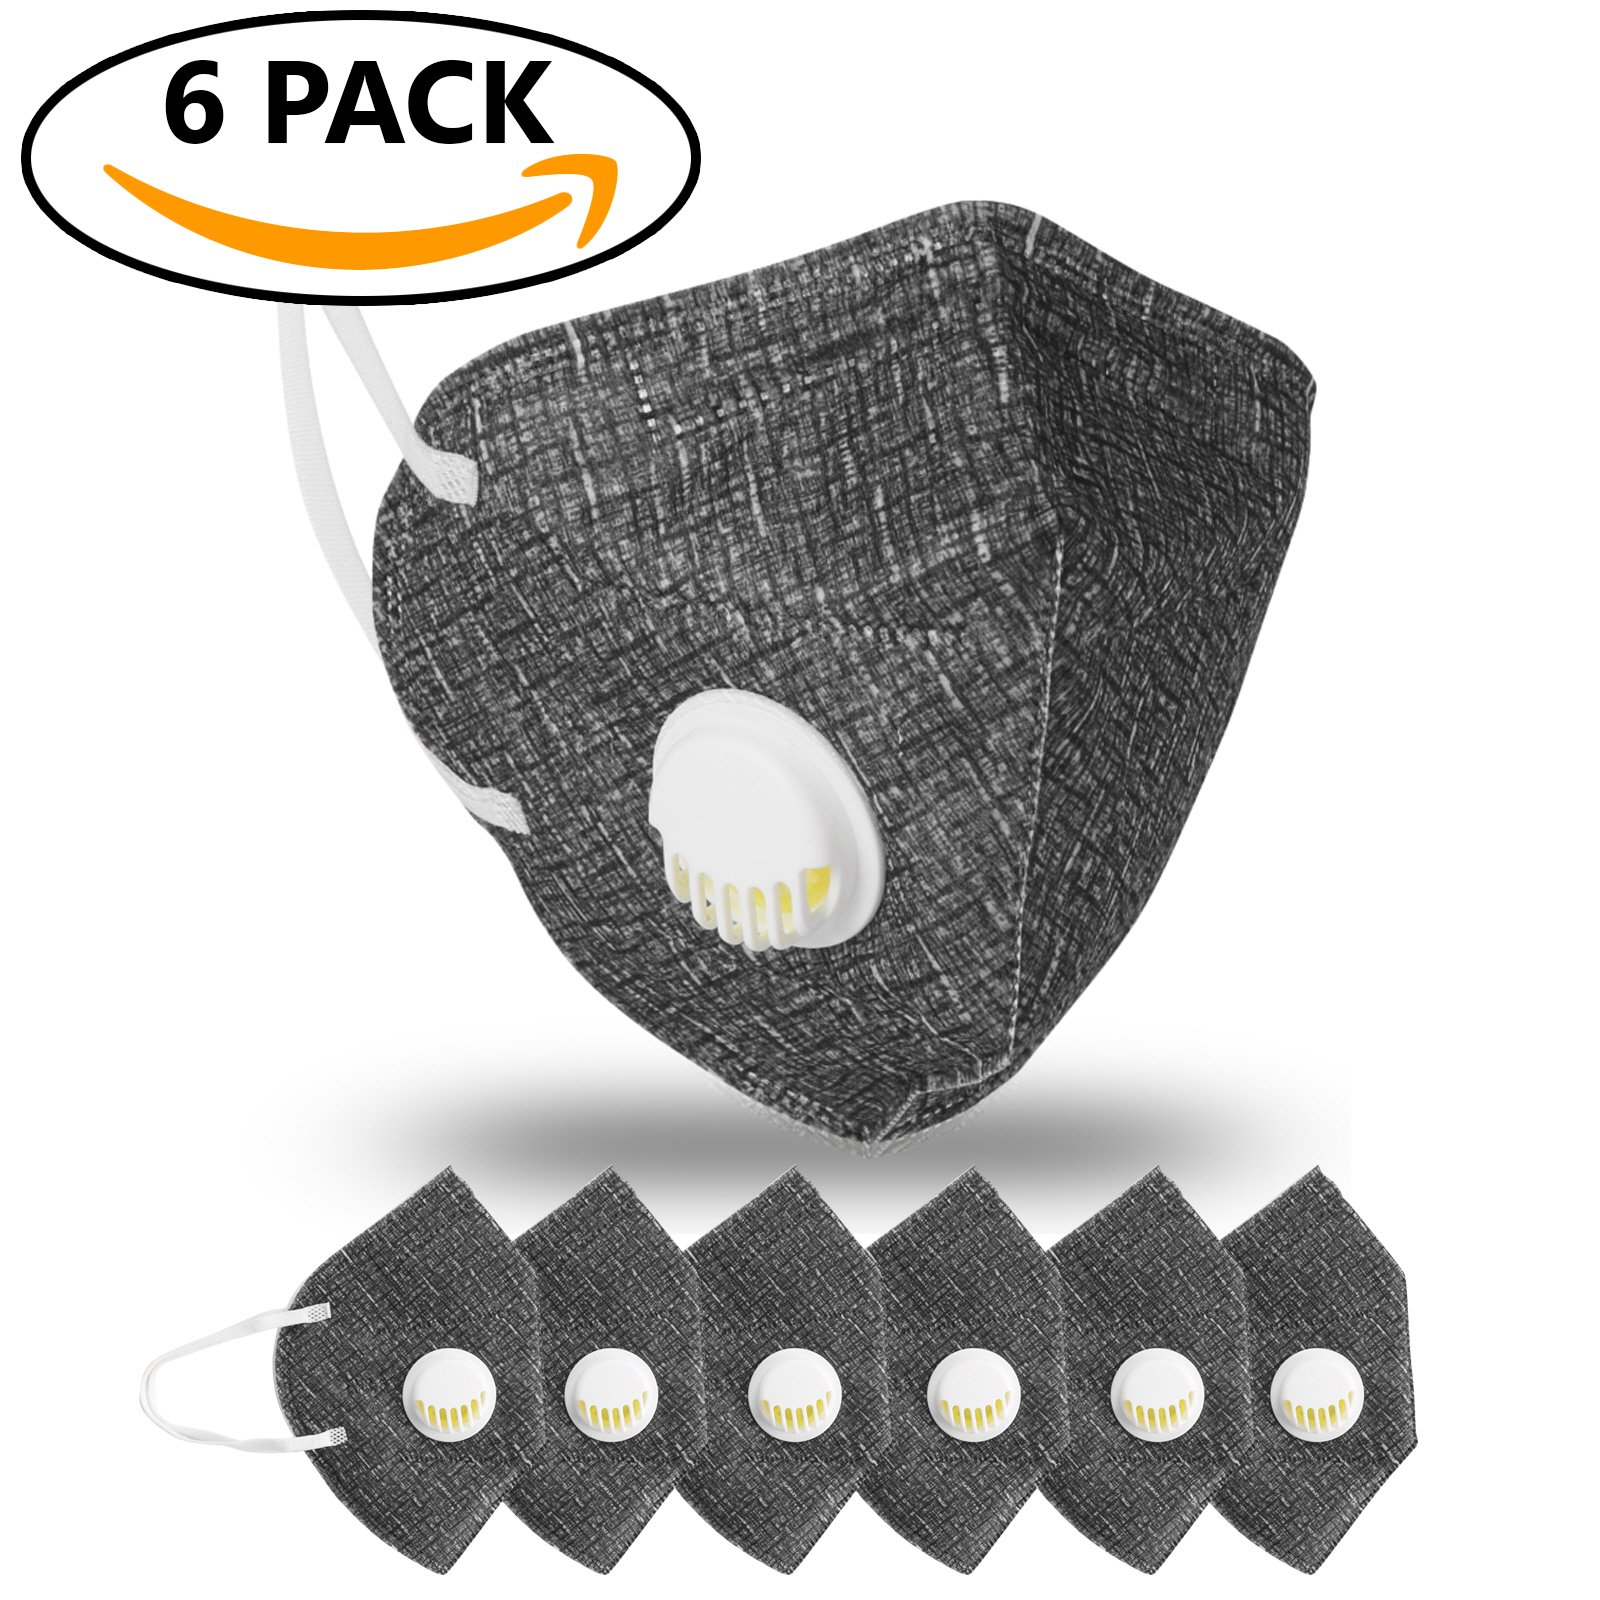 JayJay 6 Pack Dust Mouth Mask PM2.5 Non-Woven Fabric Filter Respirator with Valve,BLACK